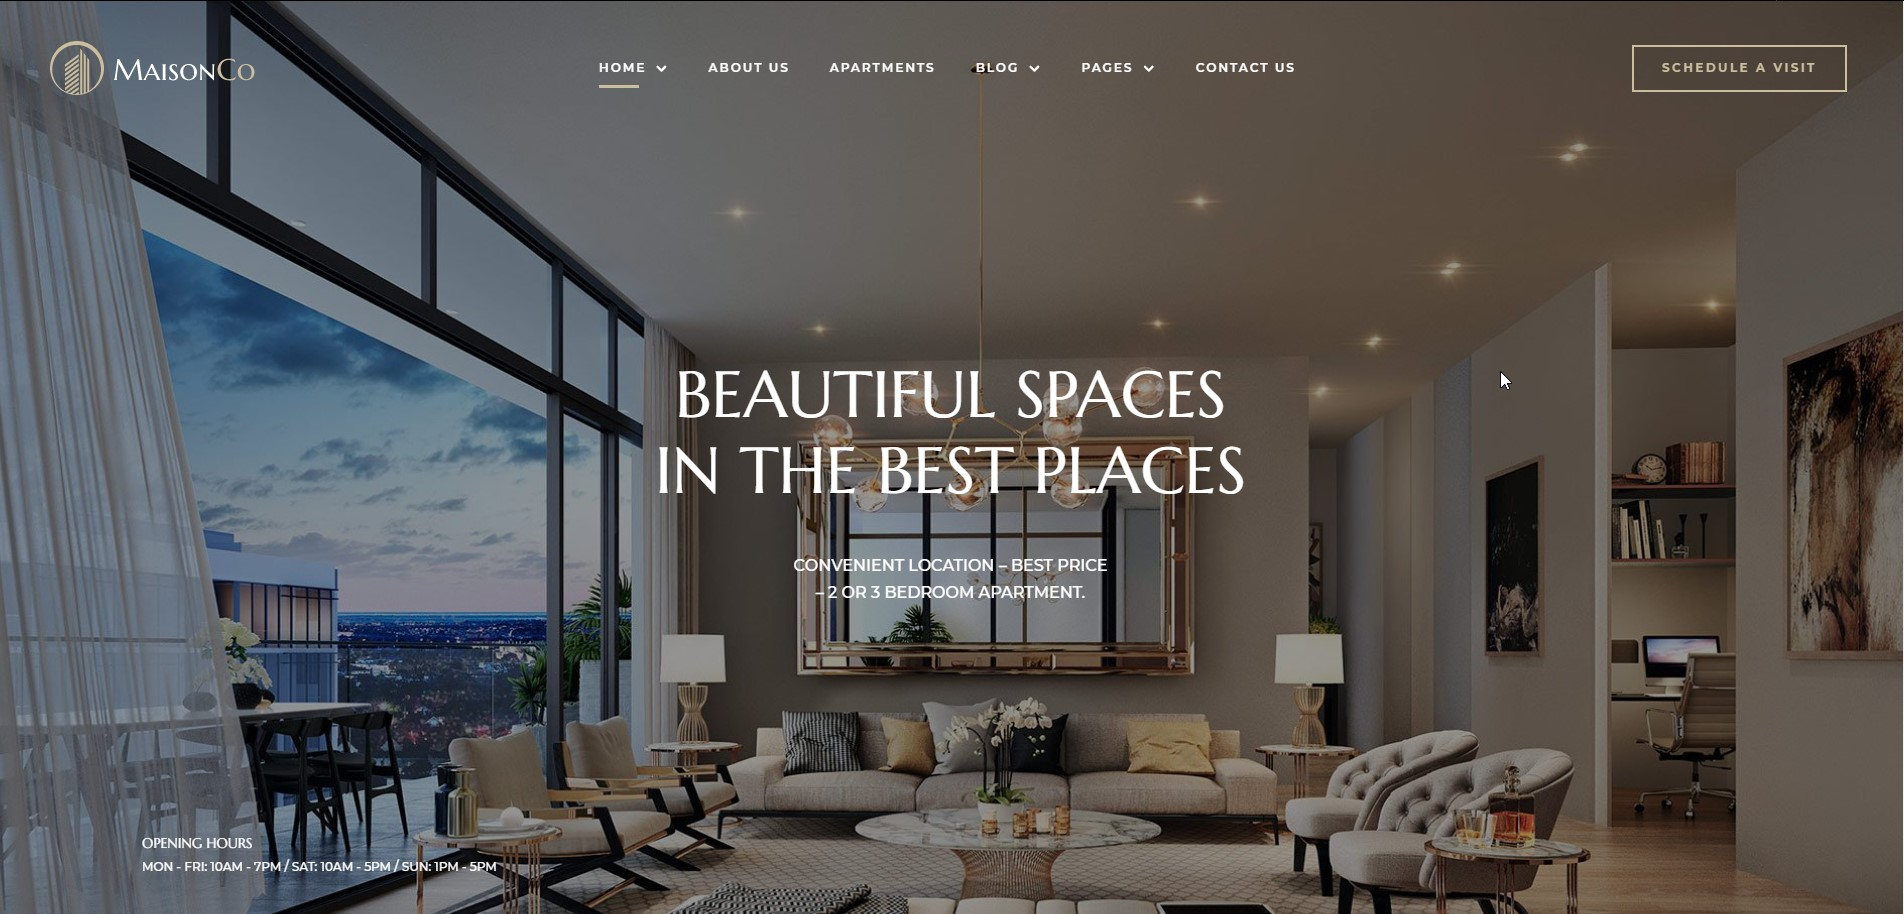 MaisonCo Single Property WordPress Theme